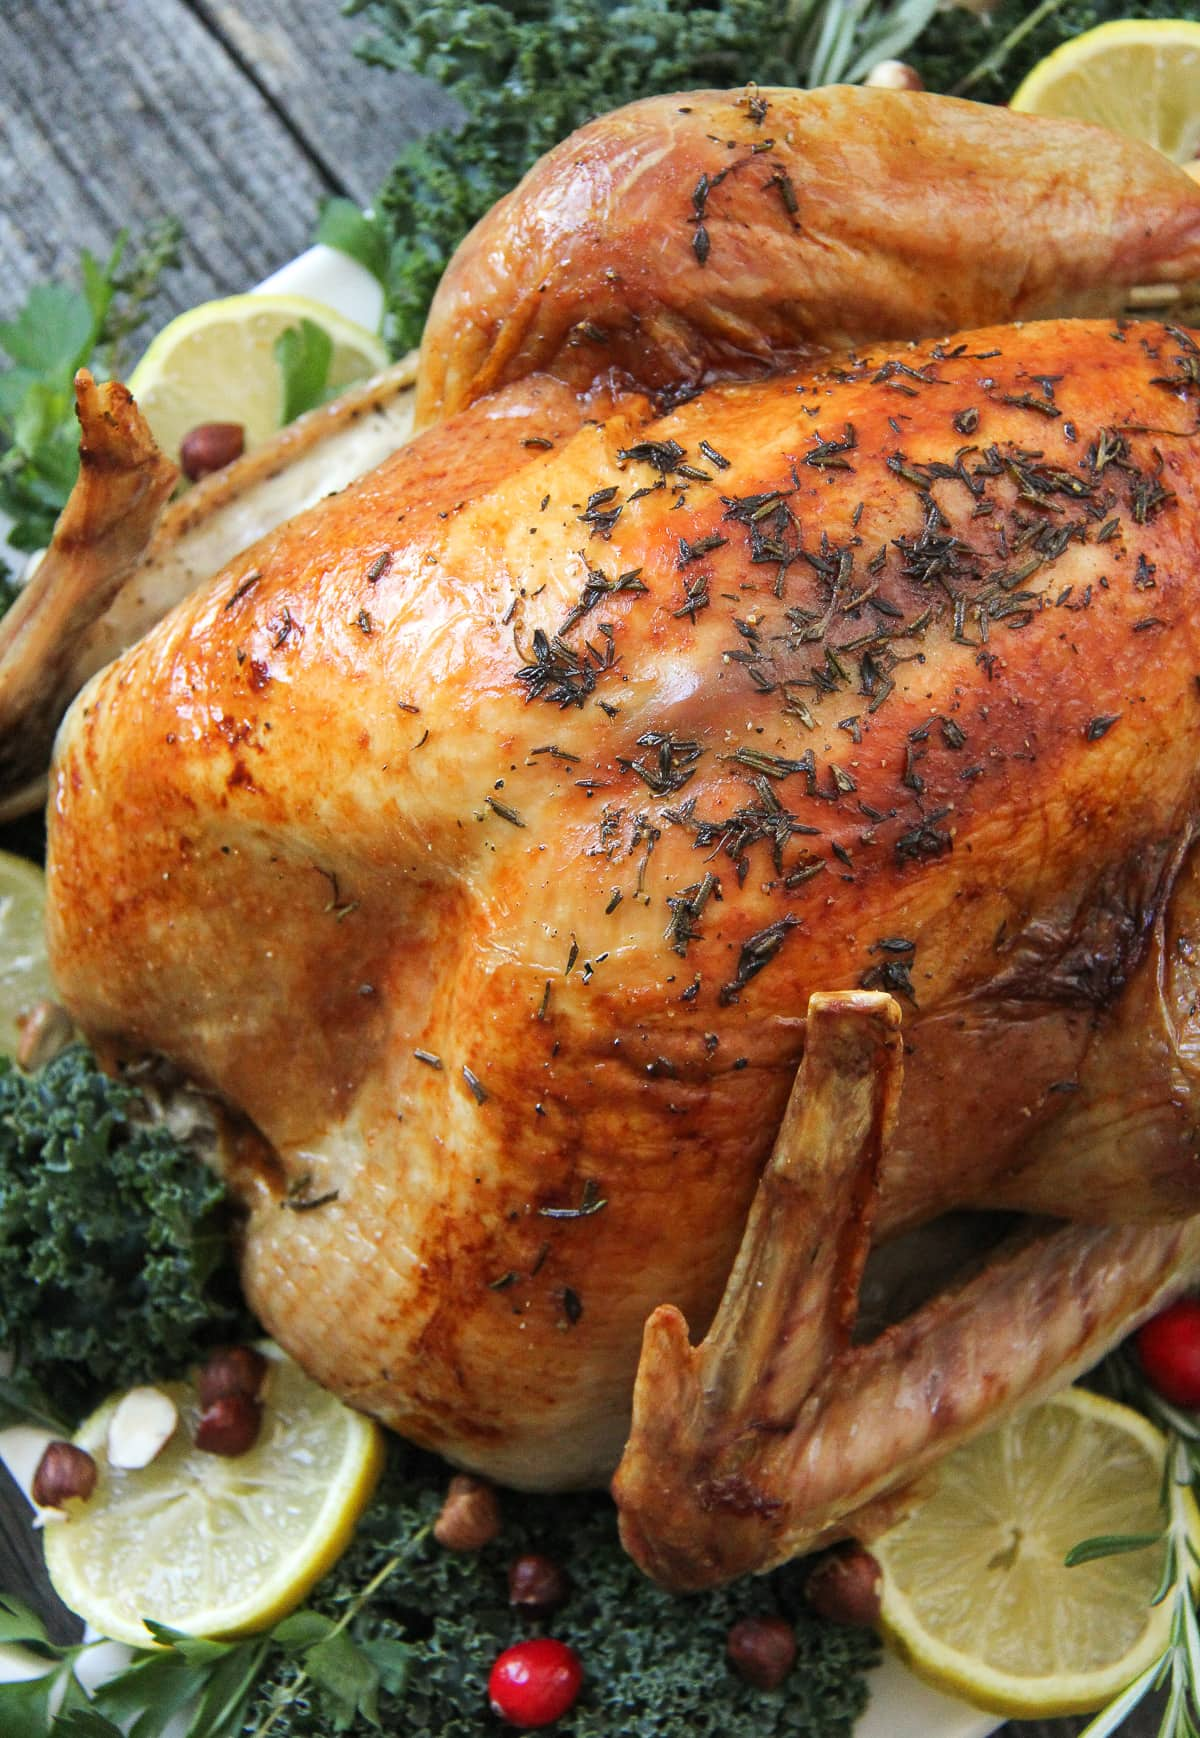 Lemon Rosemary Roasted Turkey